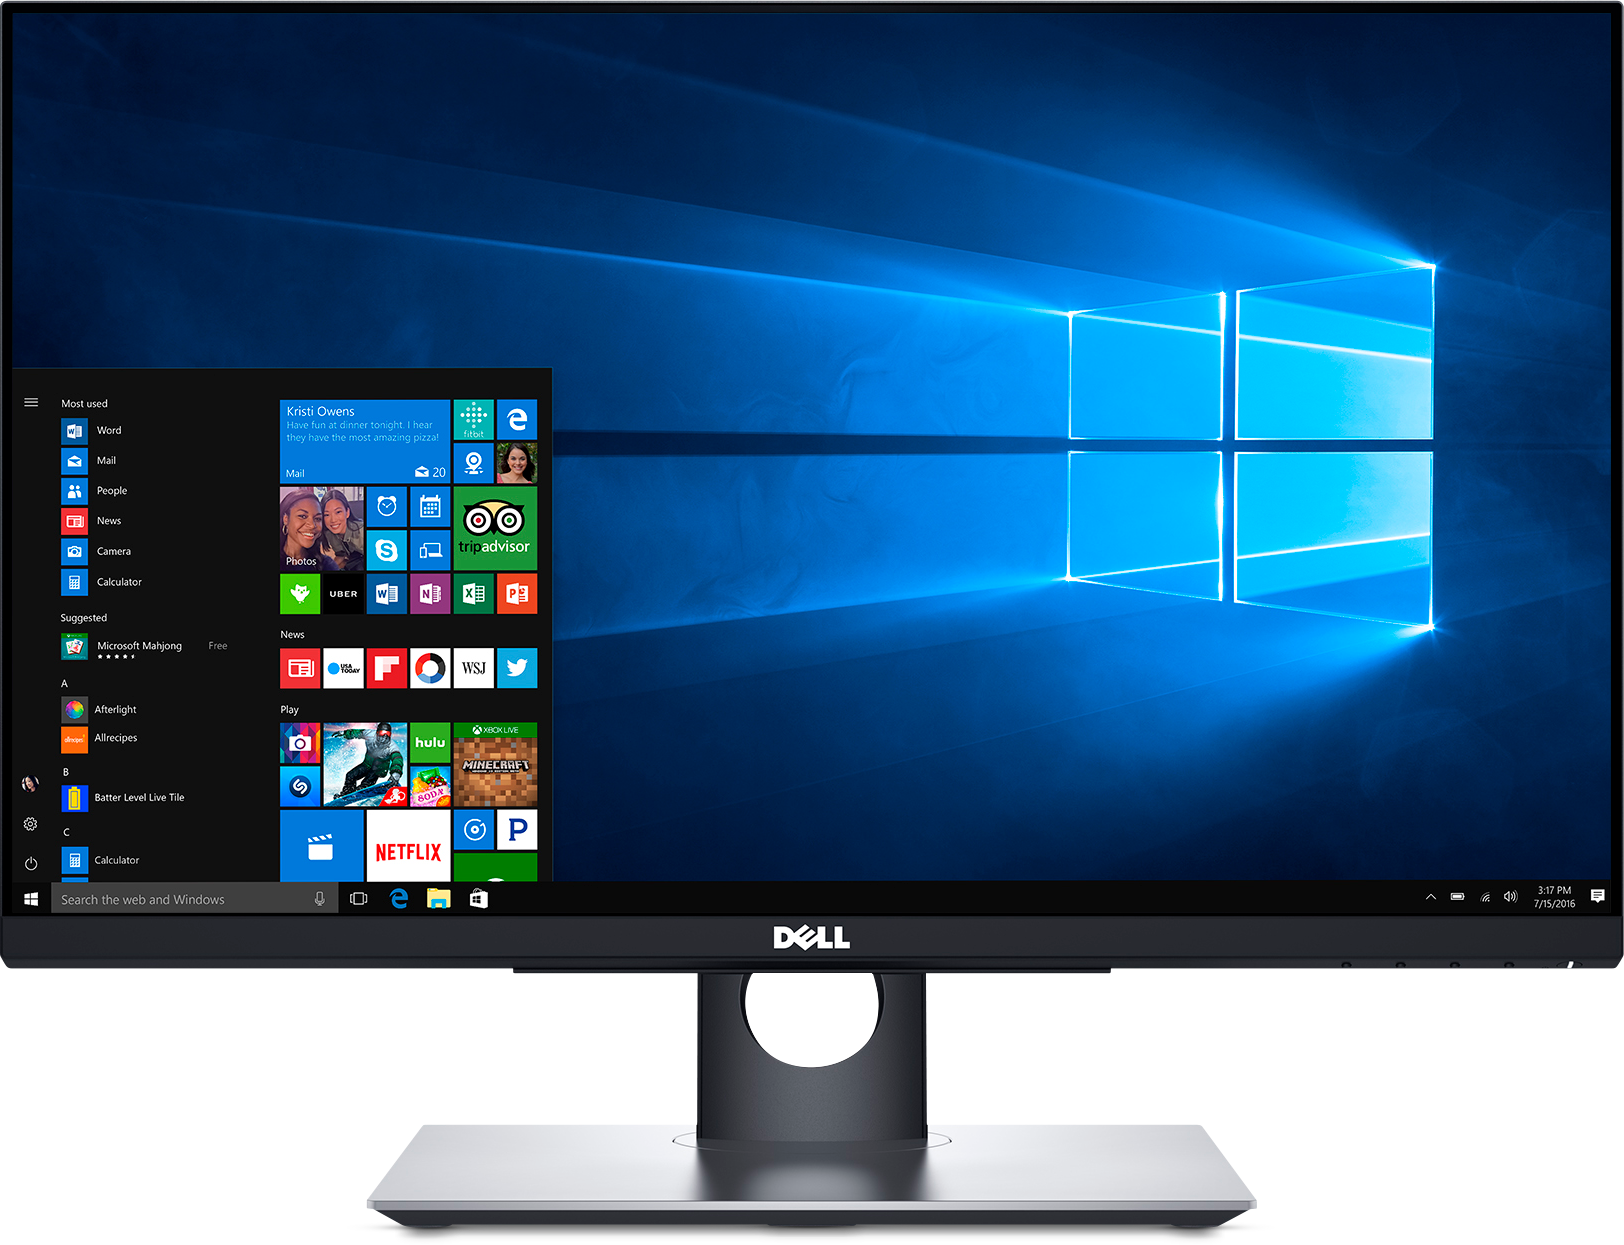 Buy Now: Dell 24 Touch Monitor - P2418HT [RJOVenturesInc.com]